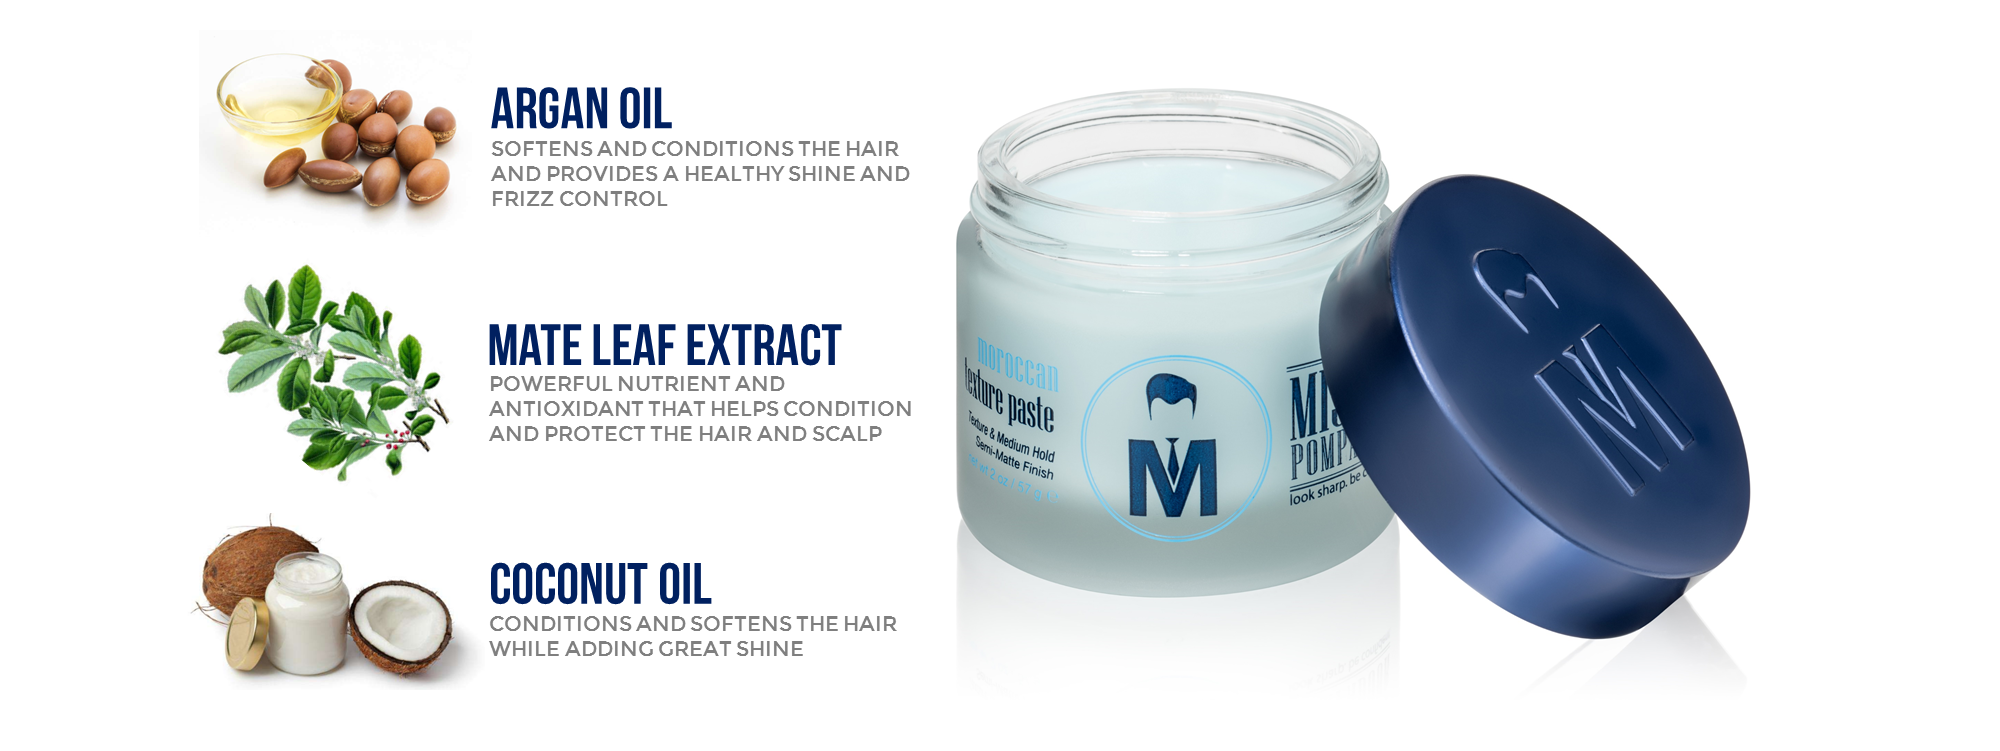 Argan oil softens and conditions the hair while providing a healthy shine and frizz control.  Mate leaf extract is a powerful nutrient and antioxidant that helps condition and protect the hair and scalp.  Coconut oil conditions and softens the hair while adding shine. Made with premium ingredients.  No parabens, alcohol, or sodium chloride.  Water based and easy to wash out.  Comes in sustainable glass jar with metal lid.